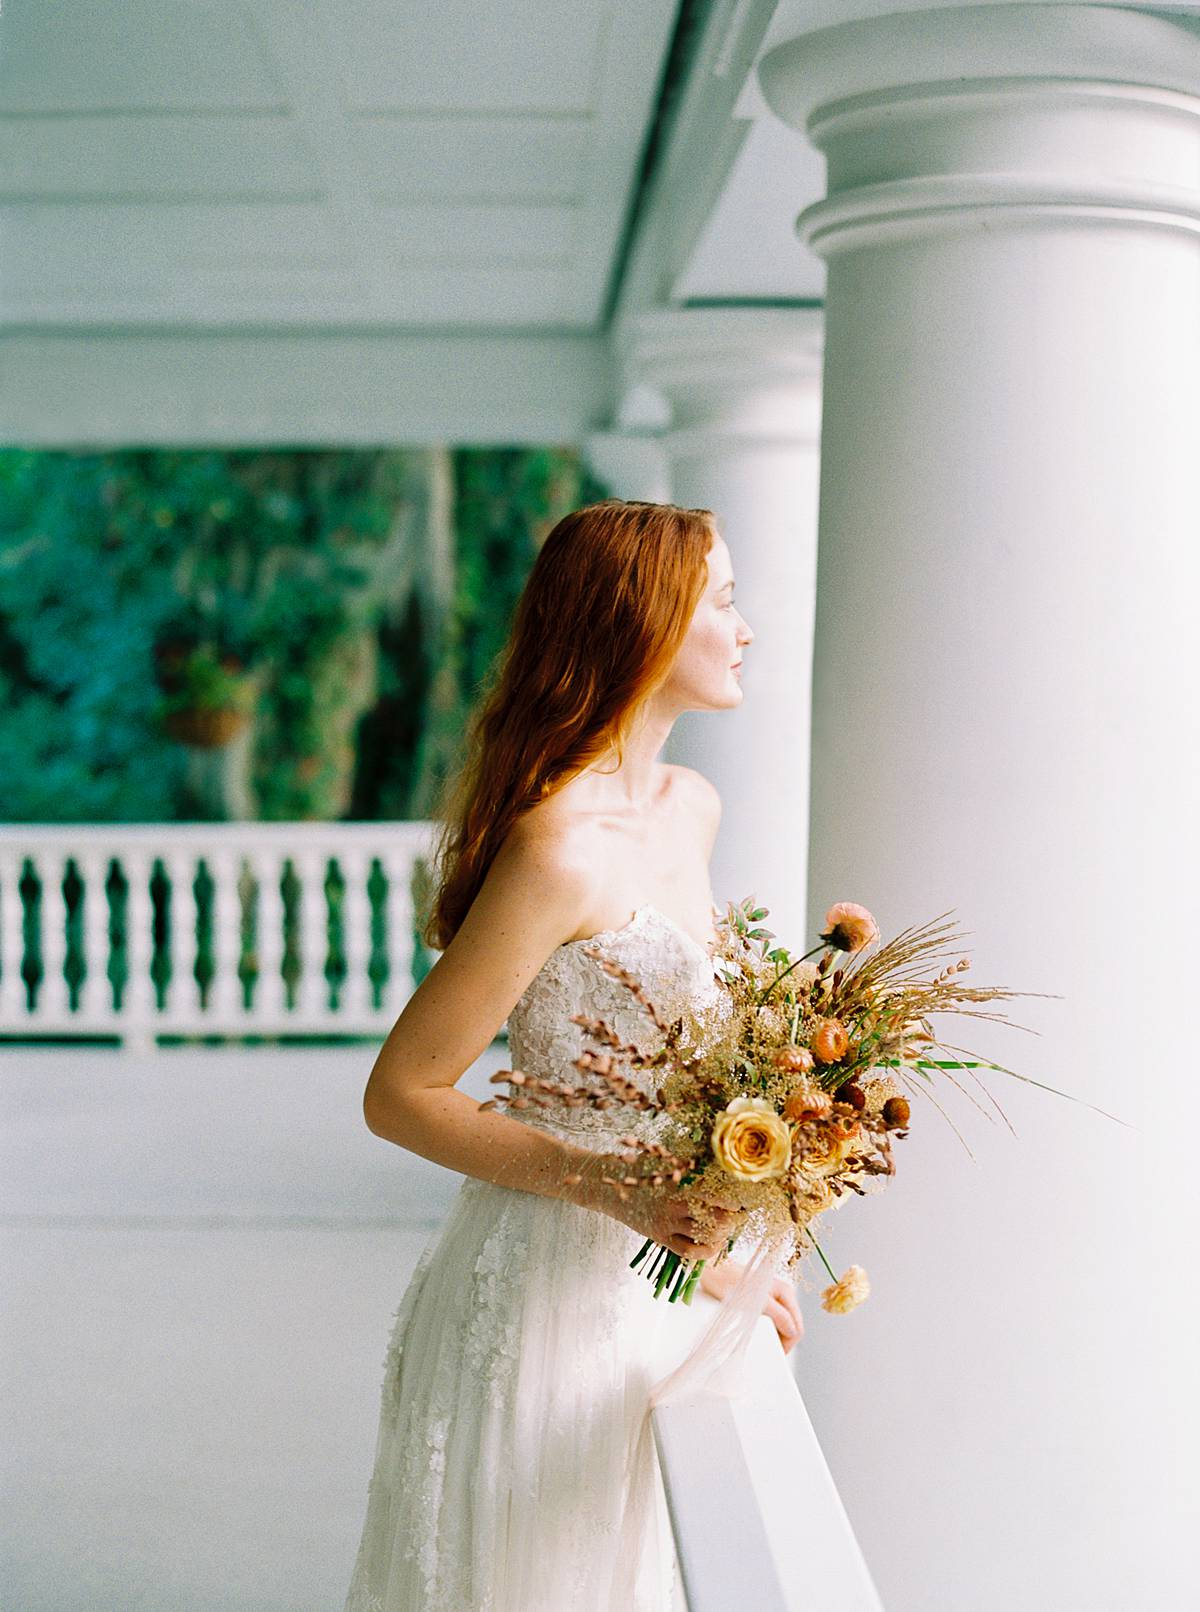 portrait of charleston wedding photographer brian d smith photography on film at The William Aiken House charleston wedding venue